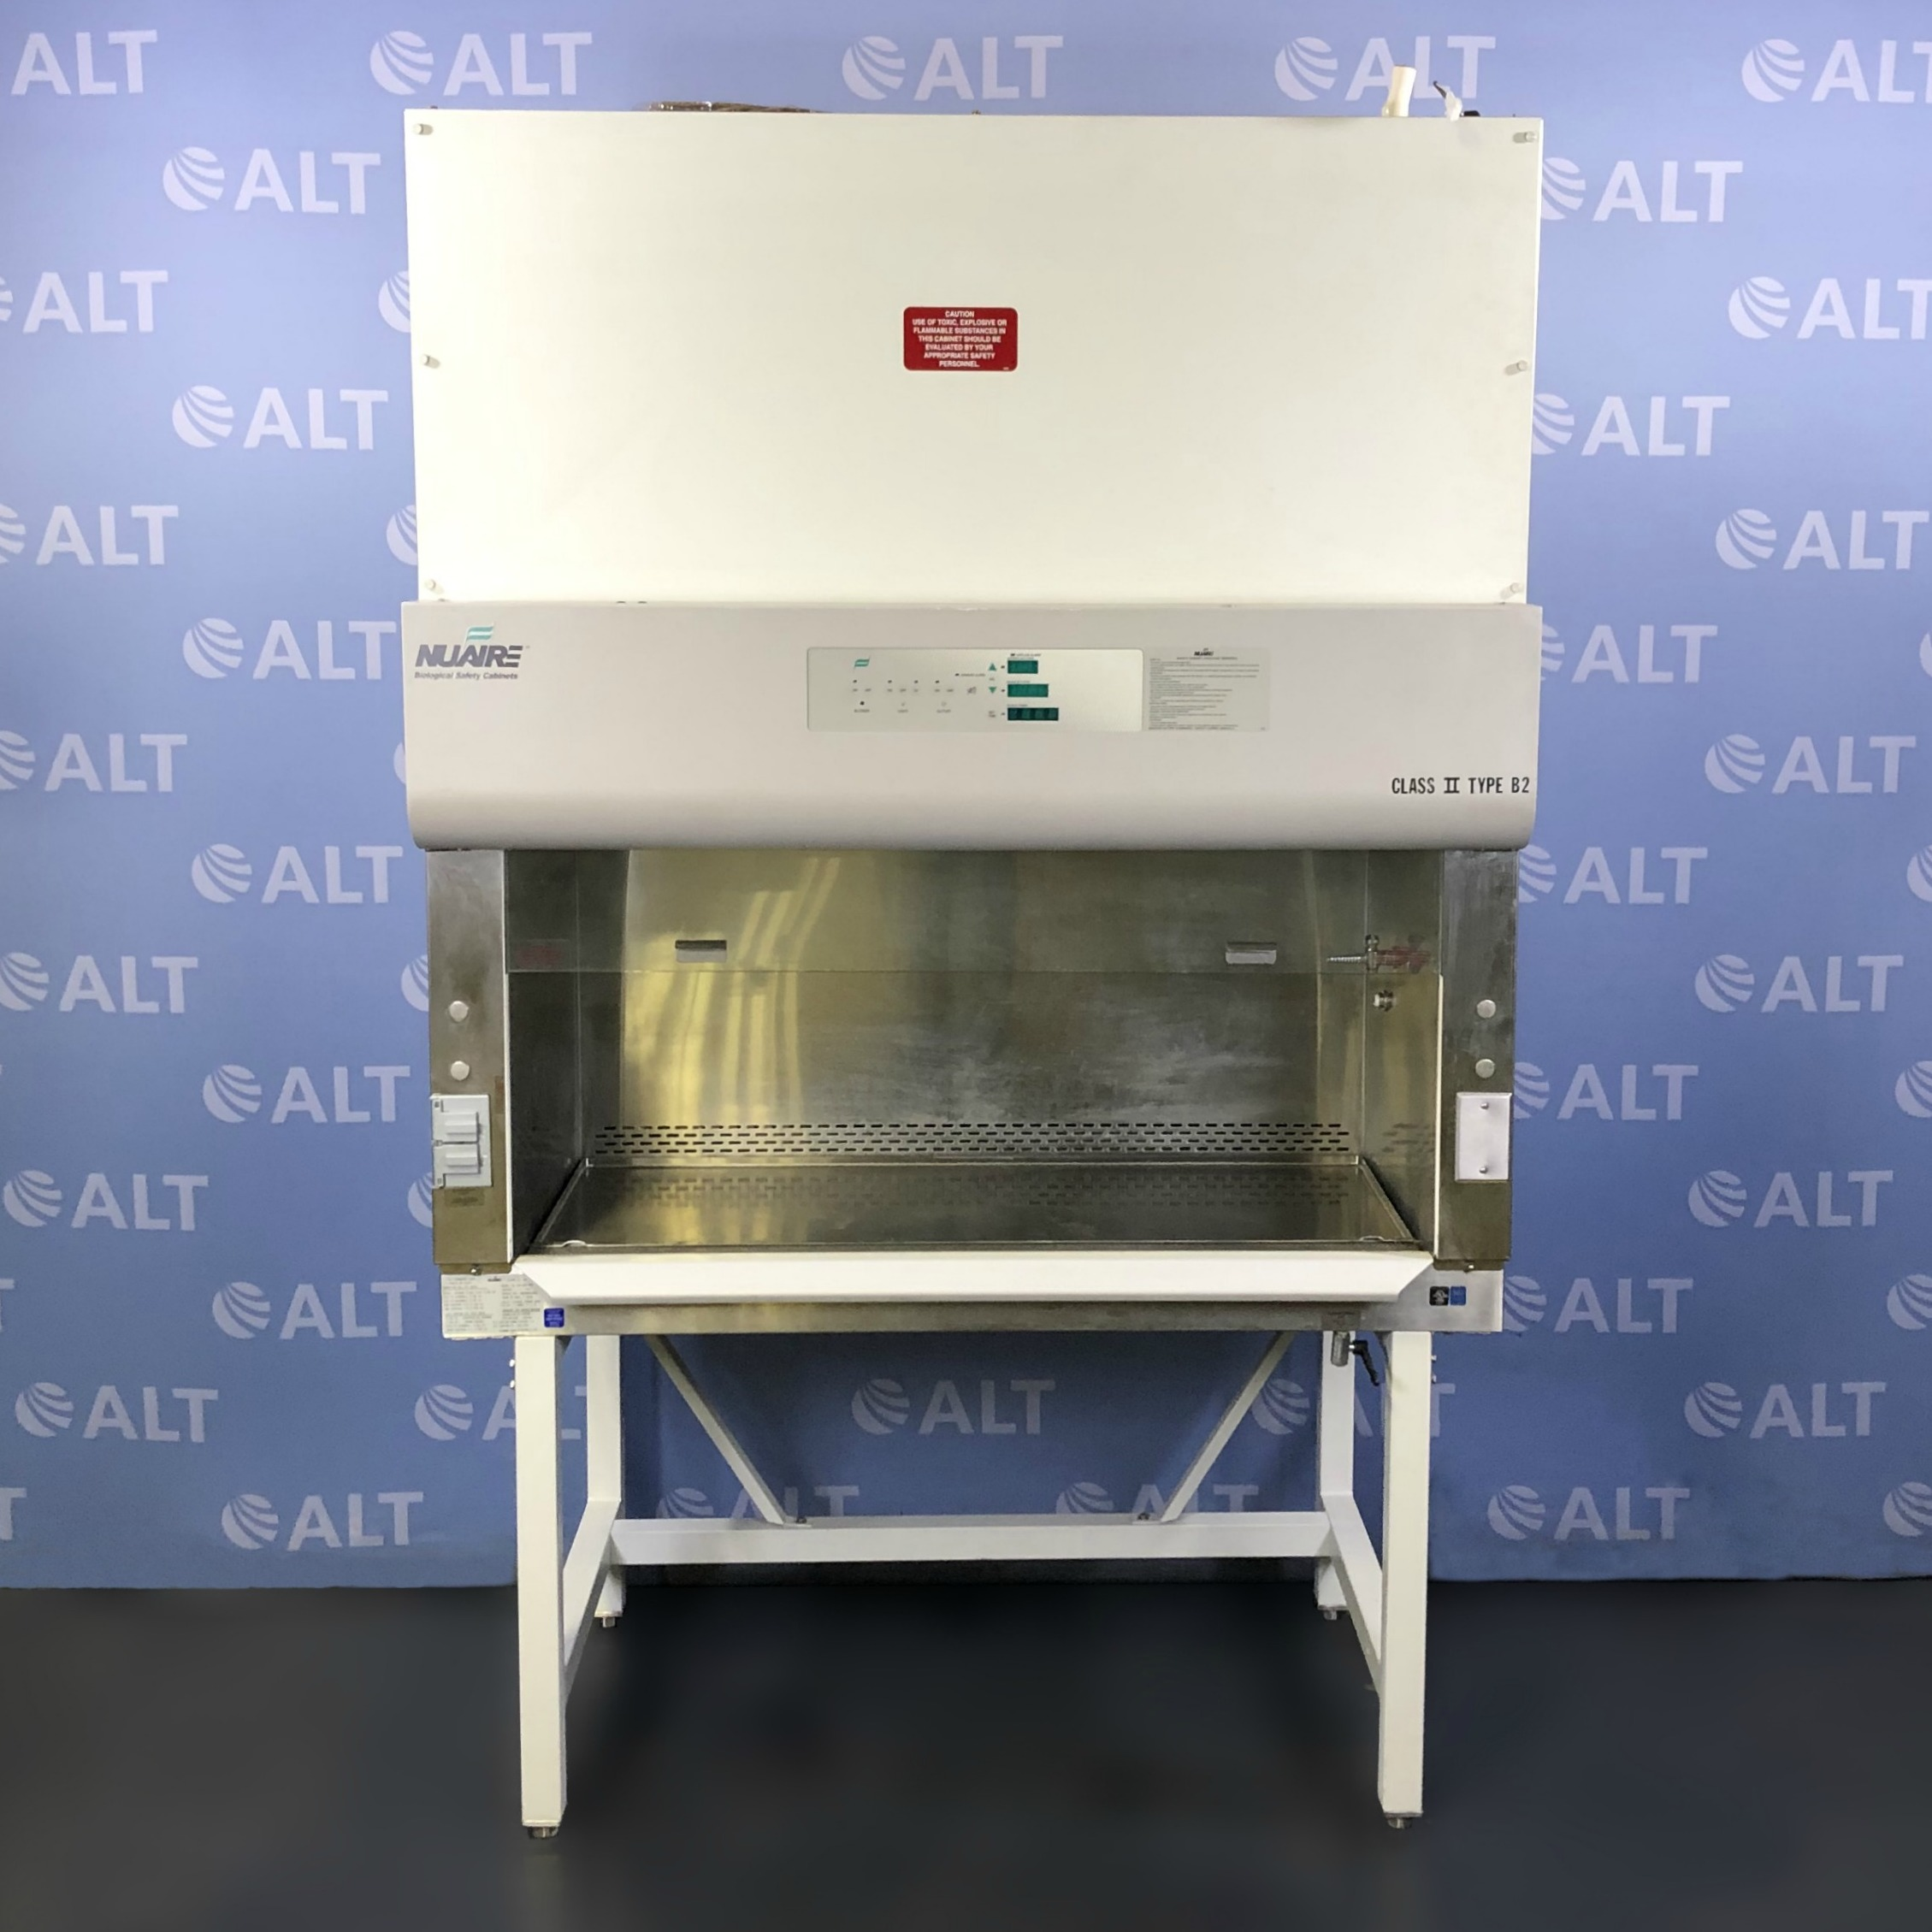 Nuaire LabGard NU-430-400 Biological Safety Cabinet Class II Type B2 Image